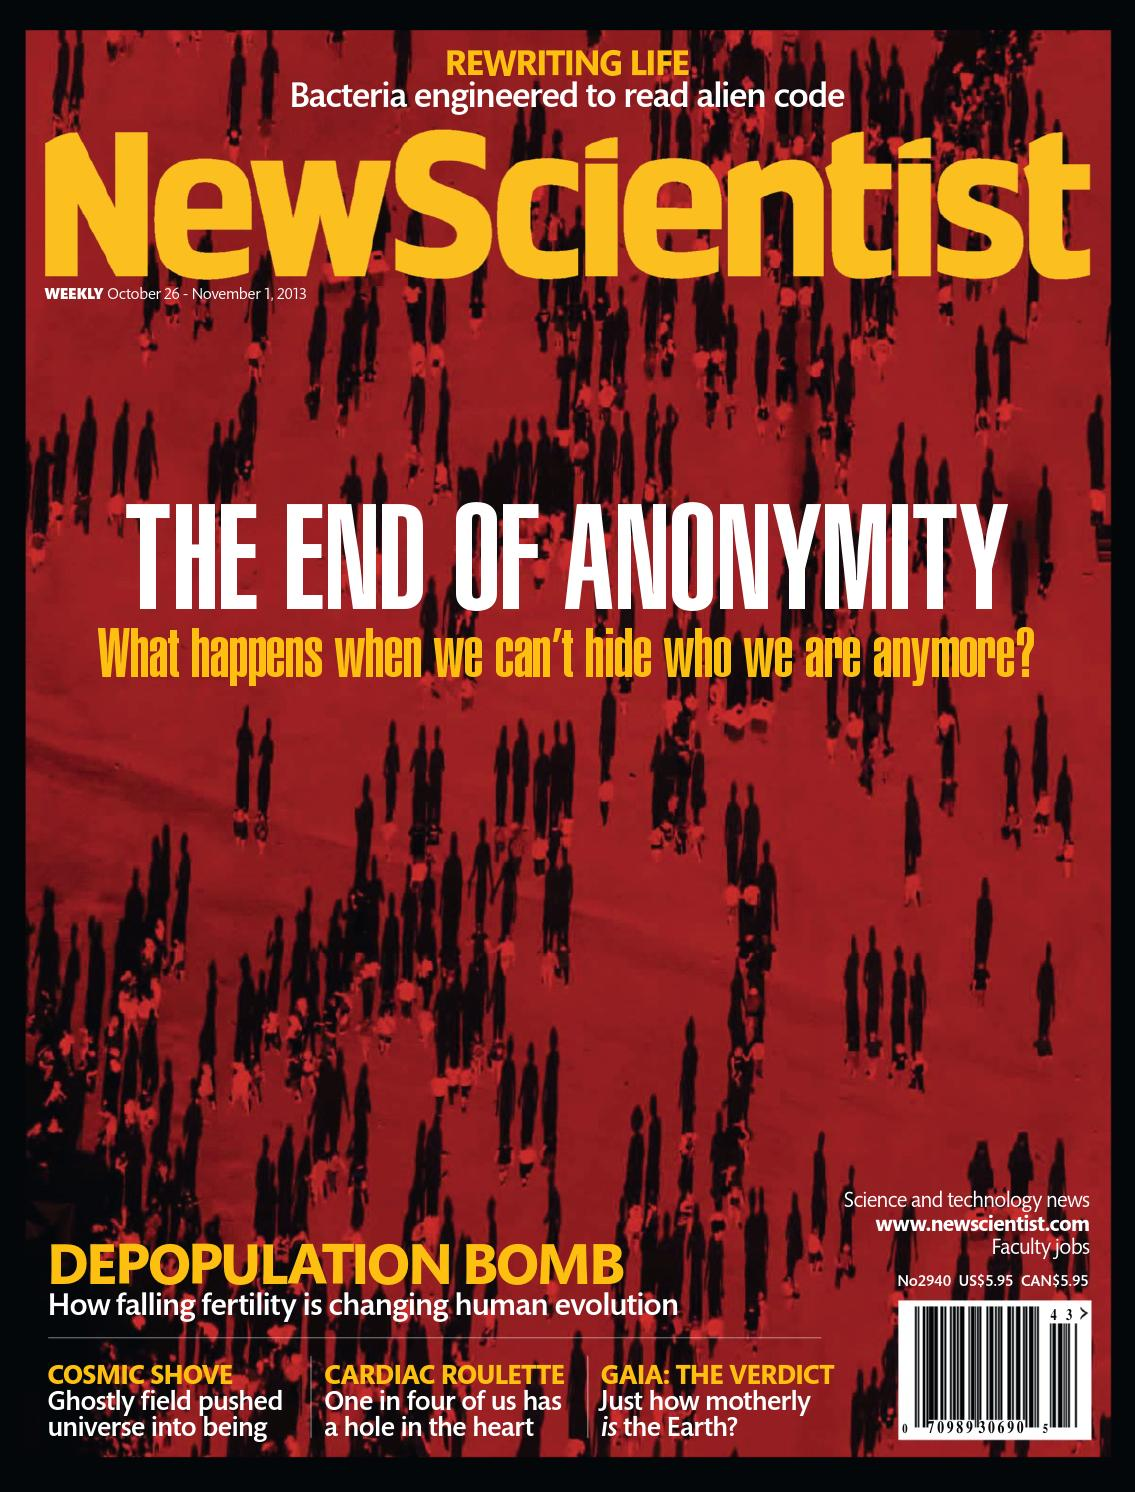 New scientist 26 october 2013 by